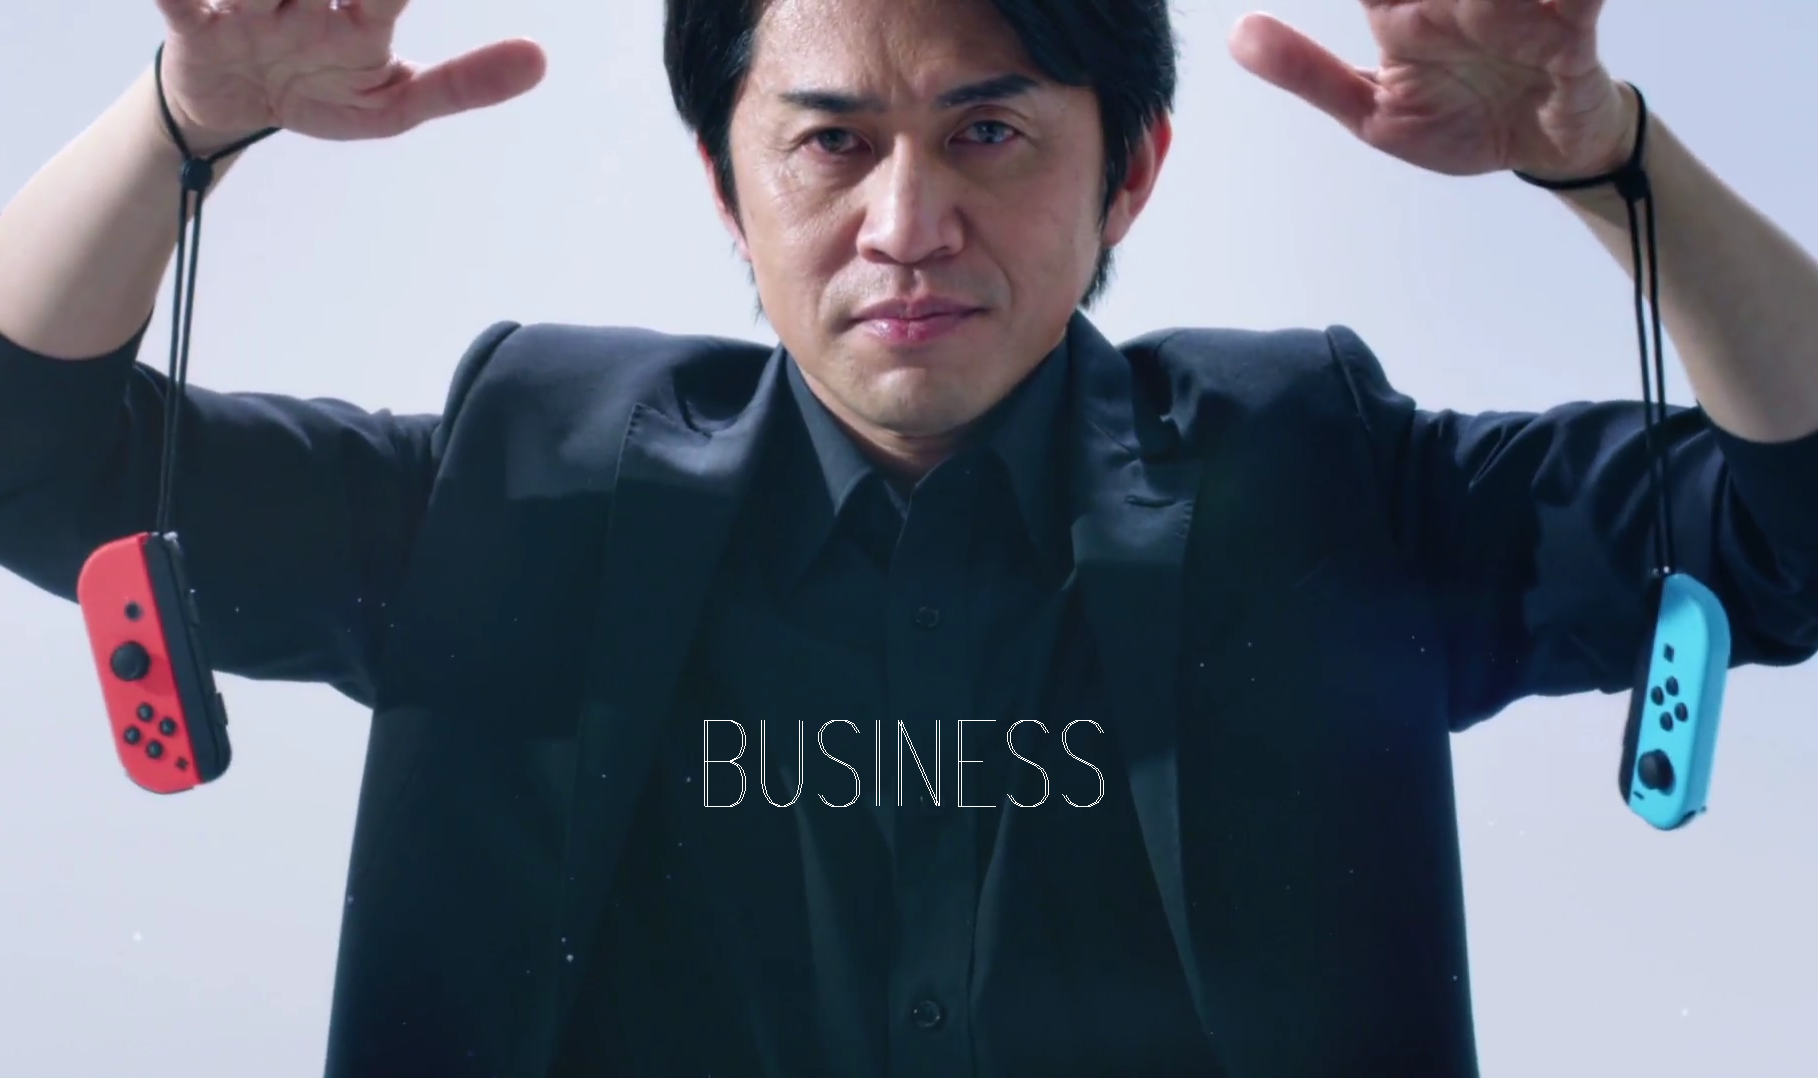 This Week In The Business: Modest Expectations For Nintendo's Switch